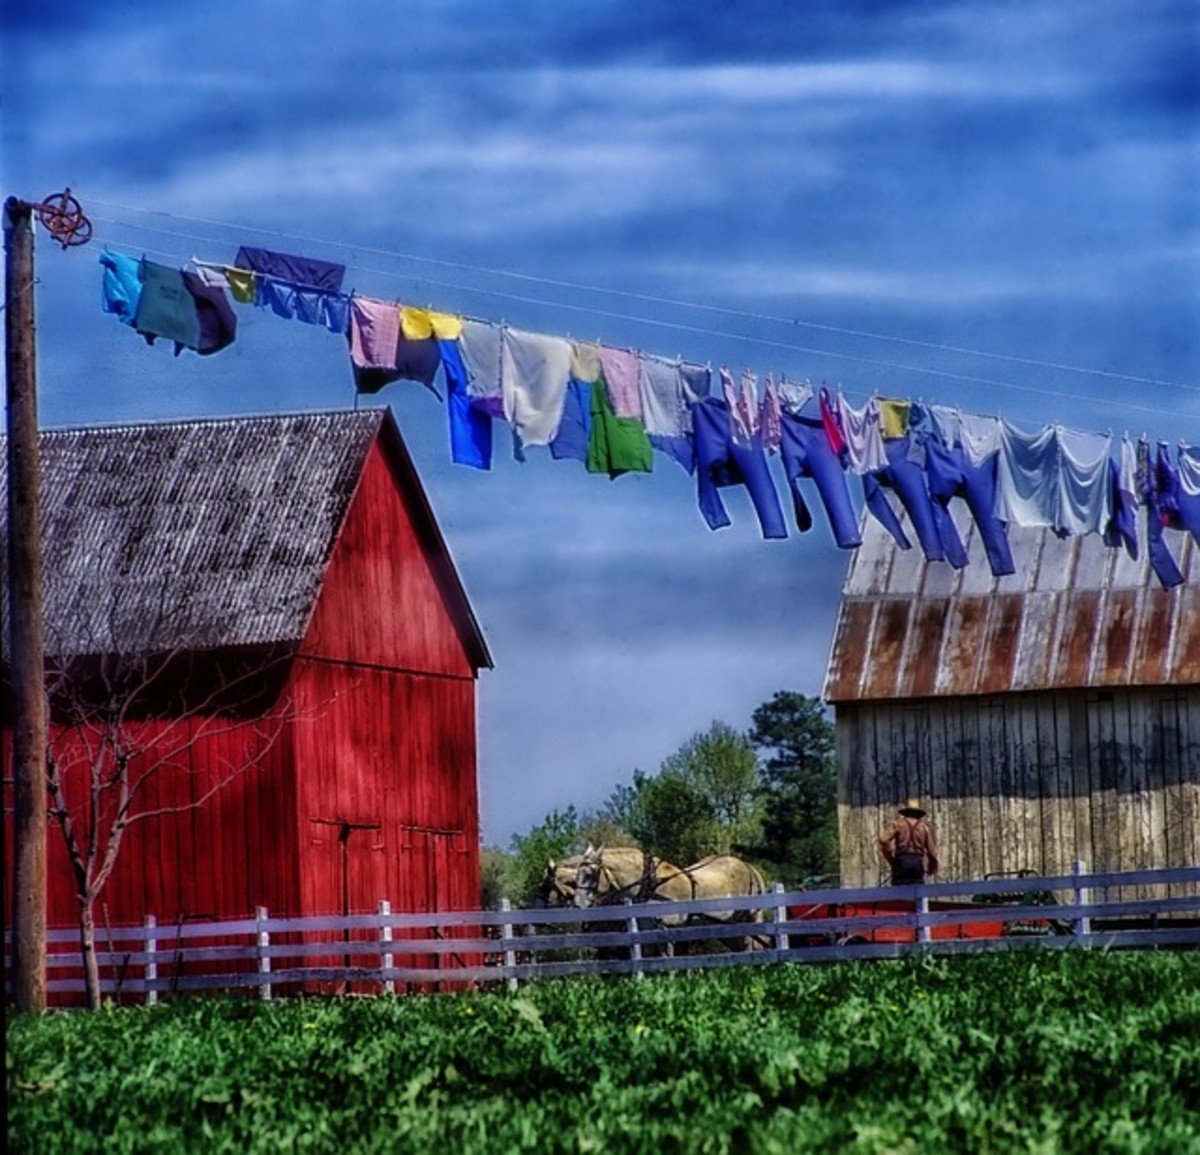 The Amish make and sell high quality quilts that appreciate in value, baked goods, jams and jellies, furniture, cabinets, wagons, and other products.